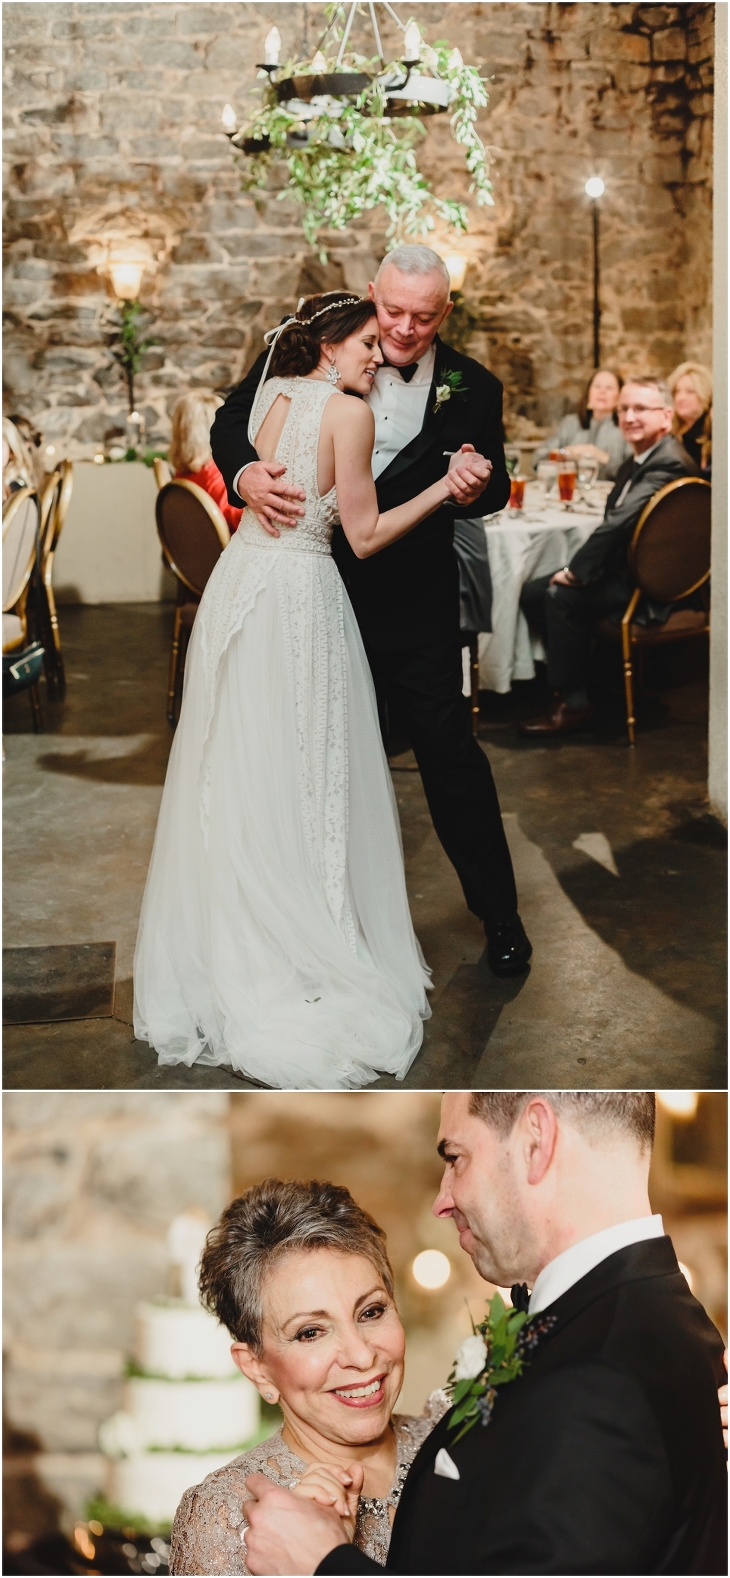 Biltmore wine cellar wedding